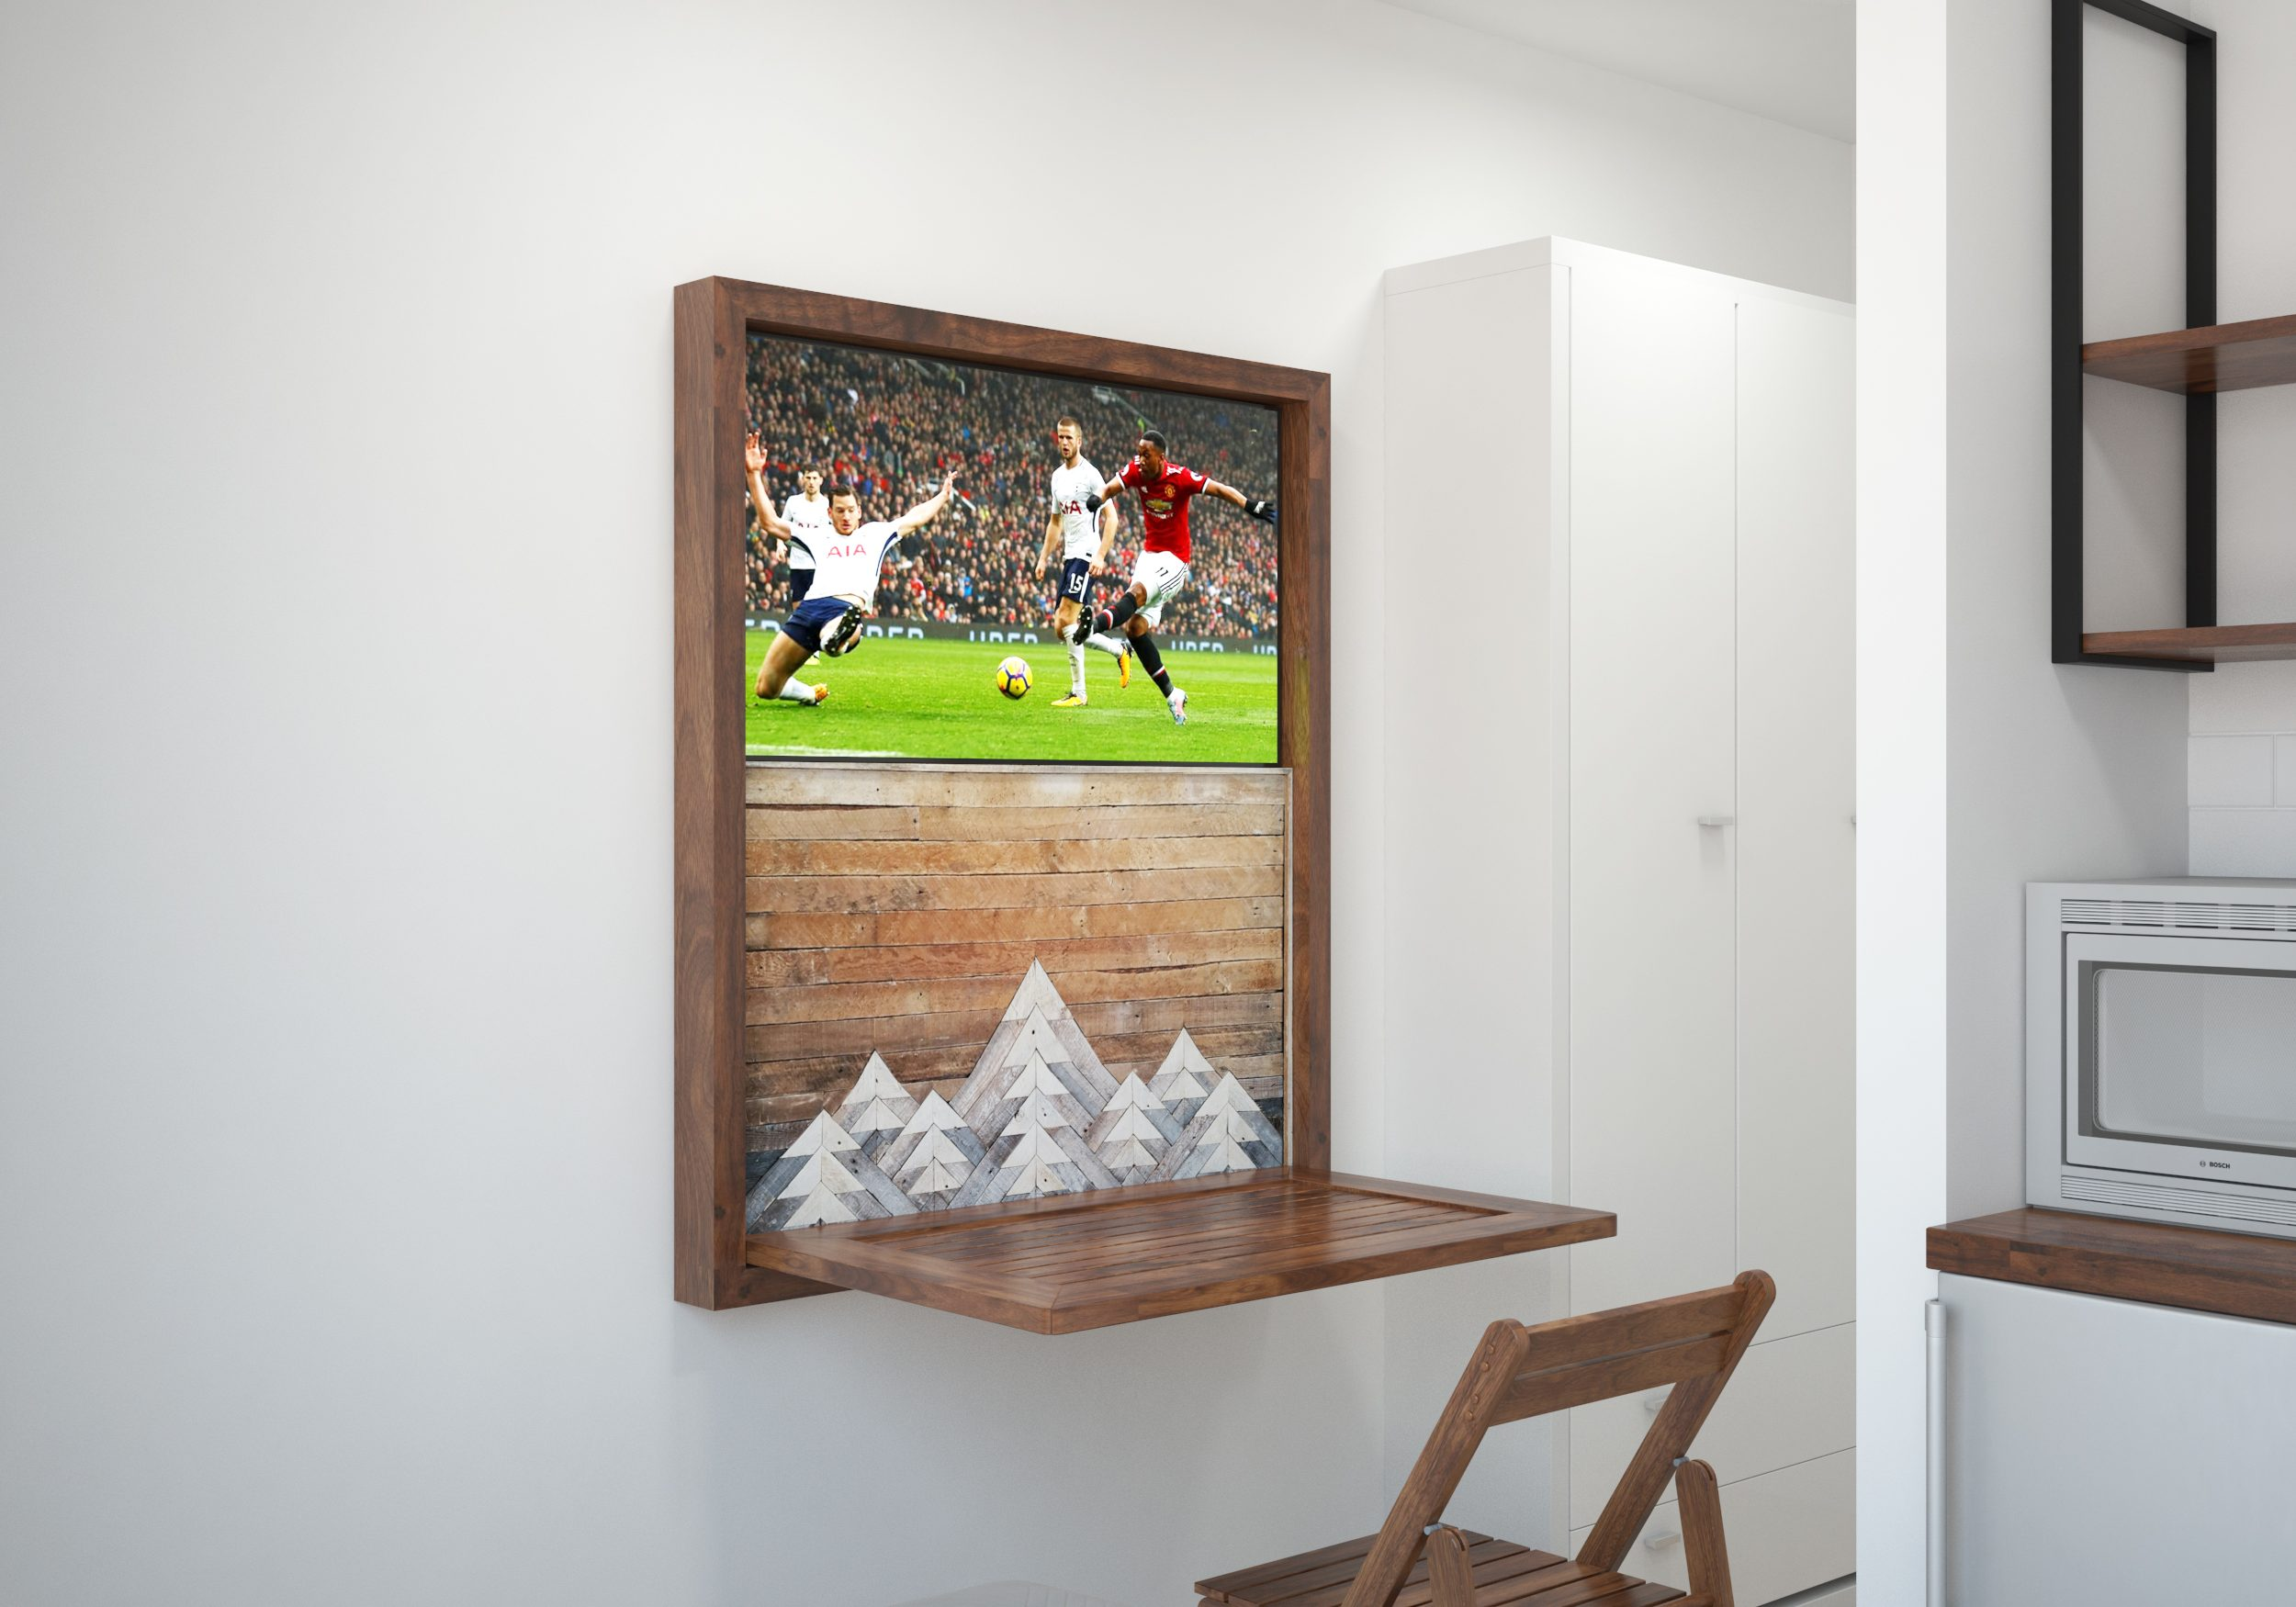 Fall down table with TV